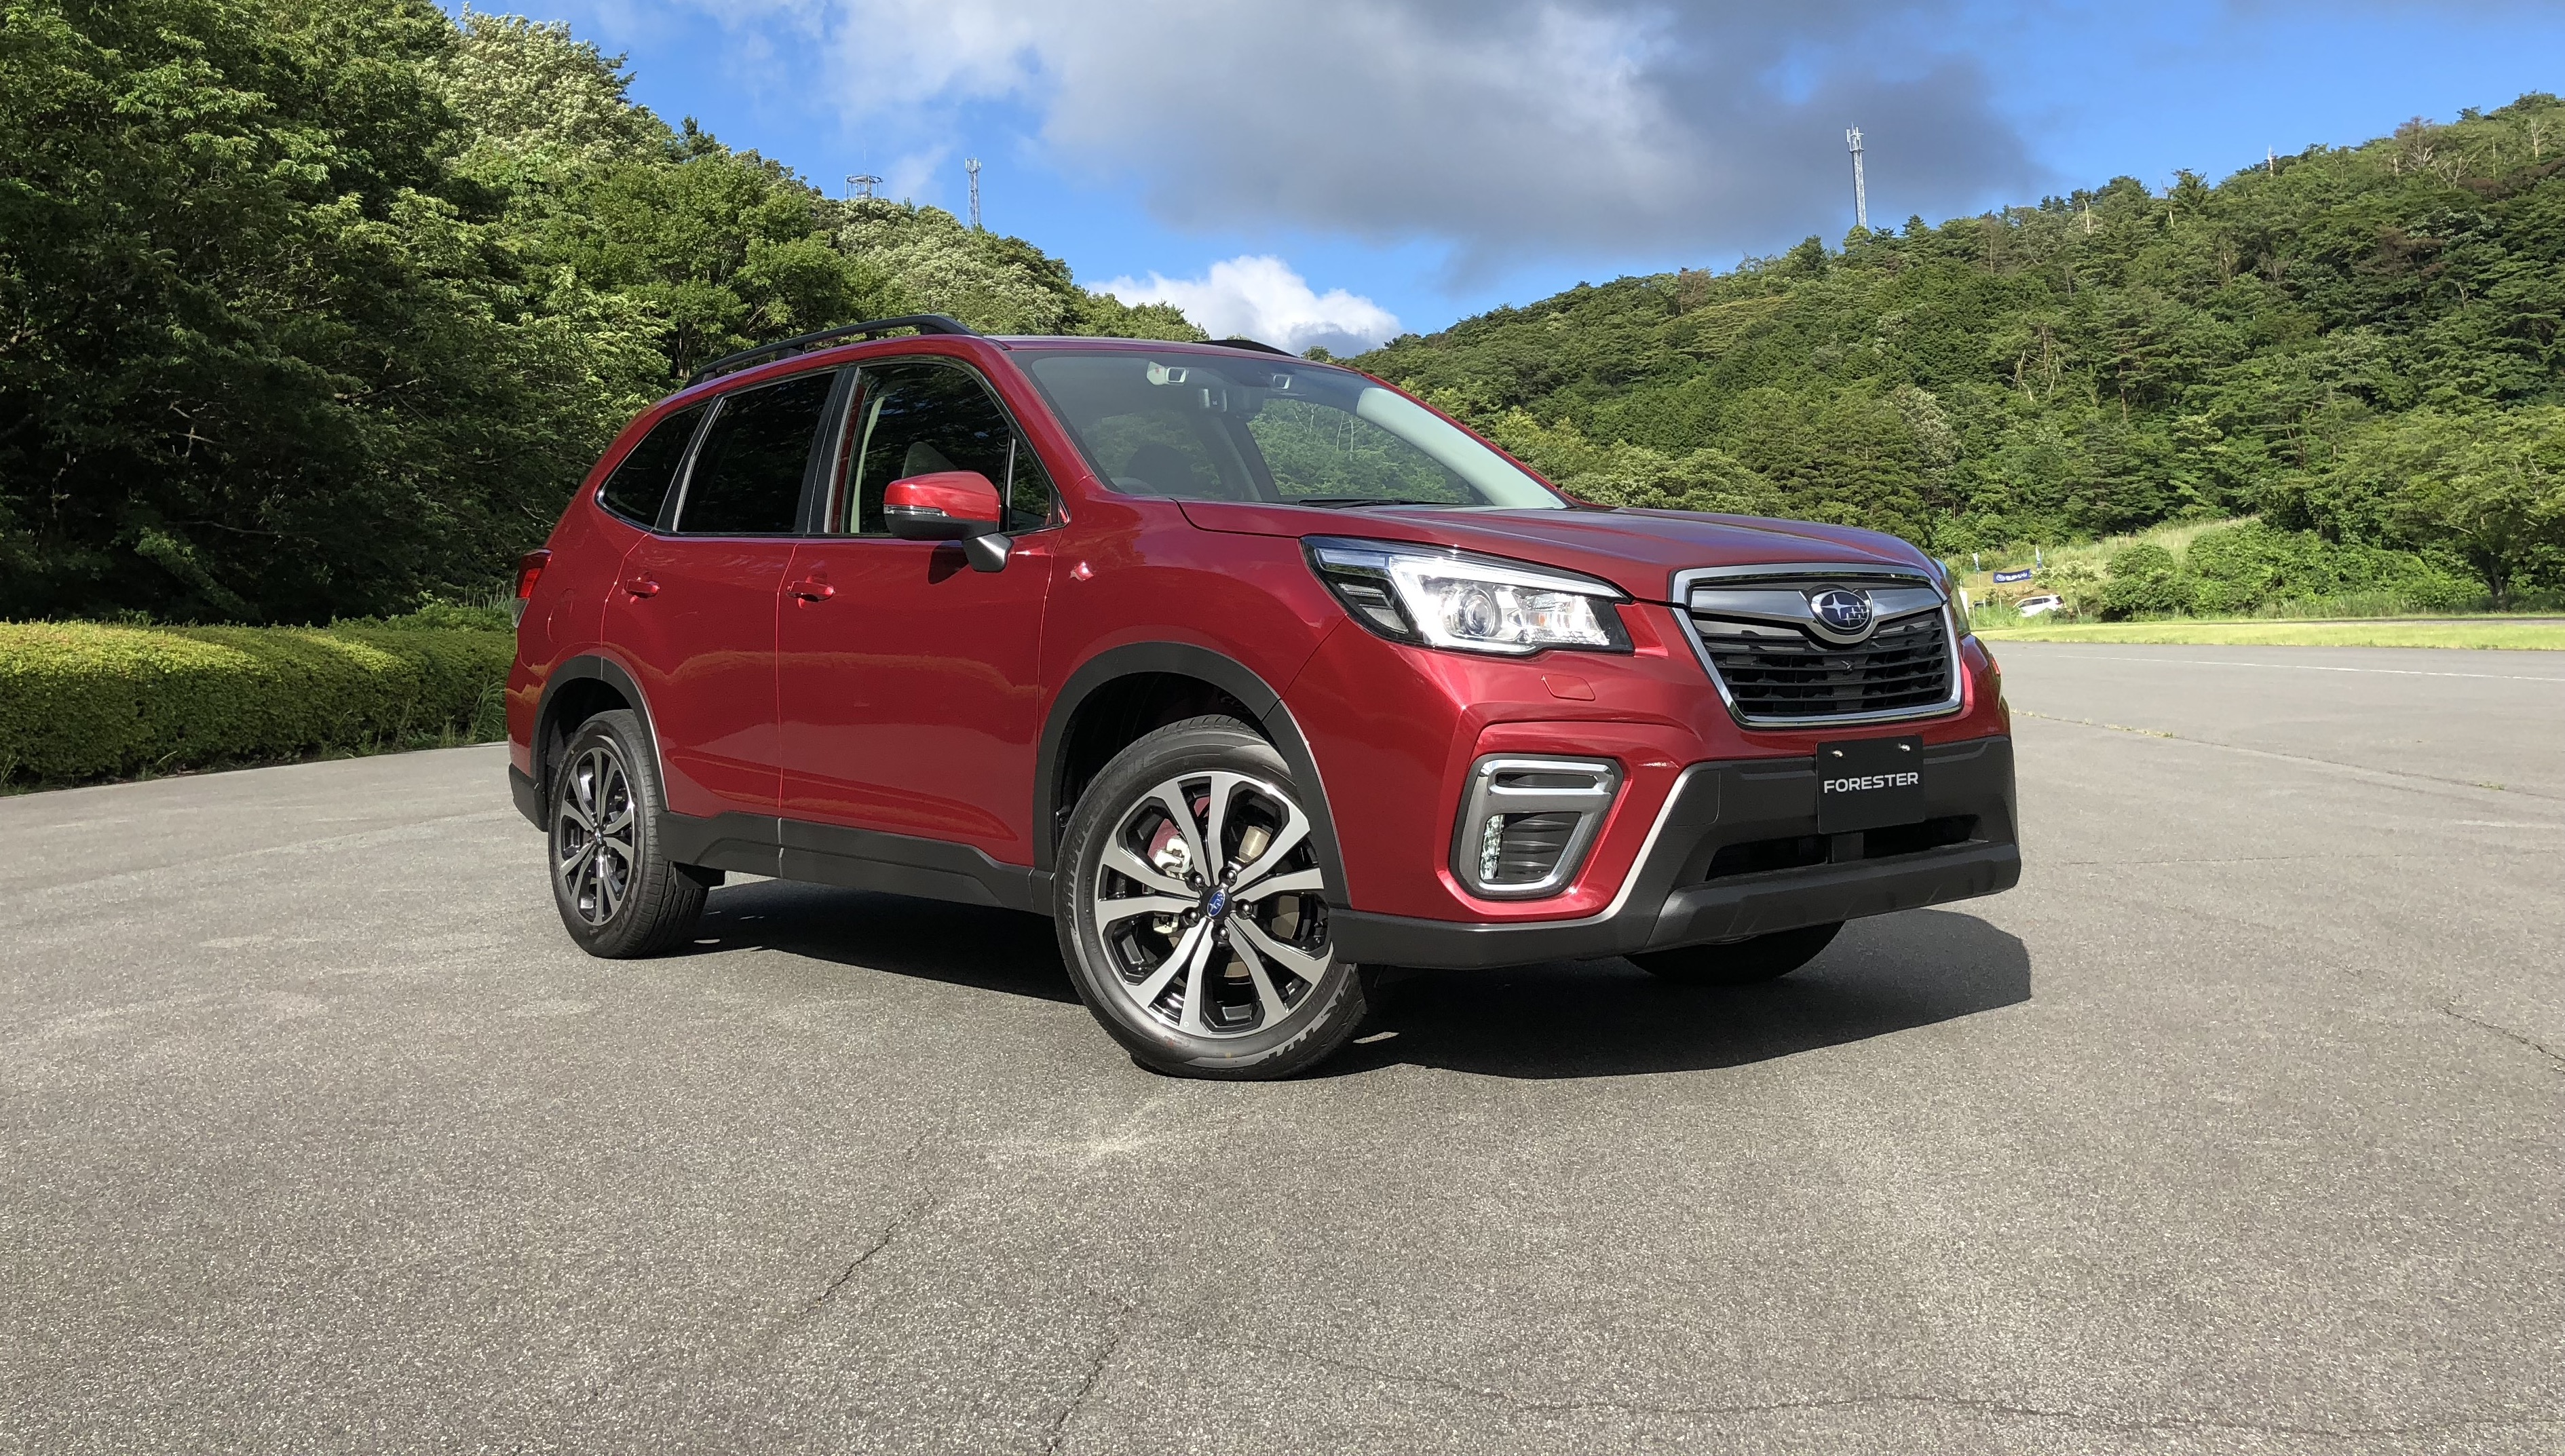 2019 Subaru Forester review | CarAdvice